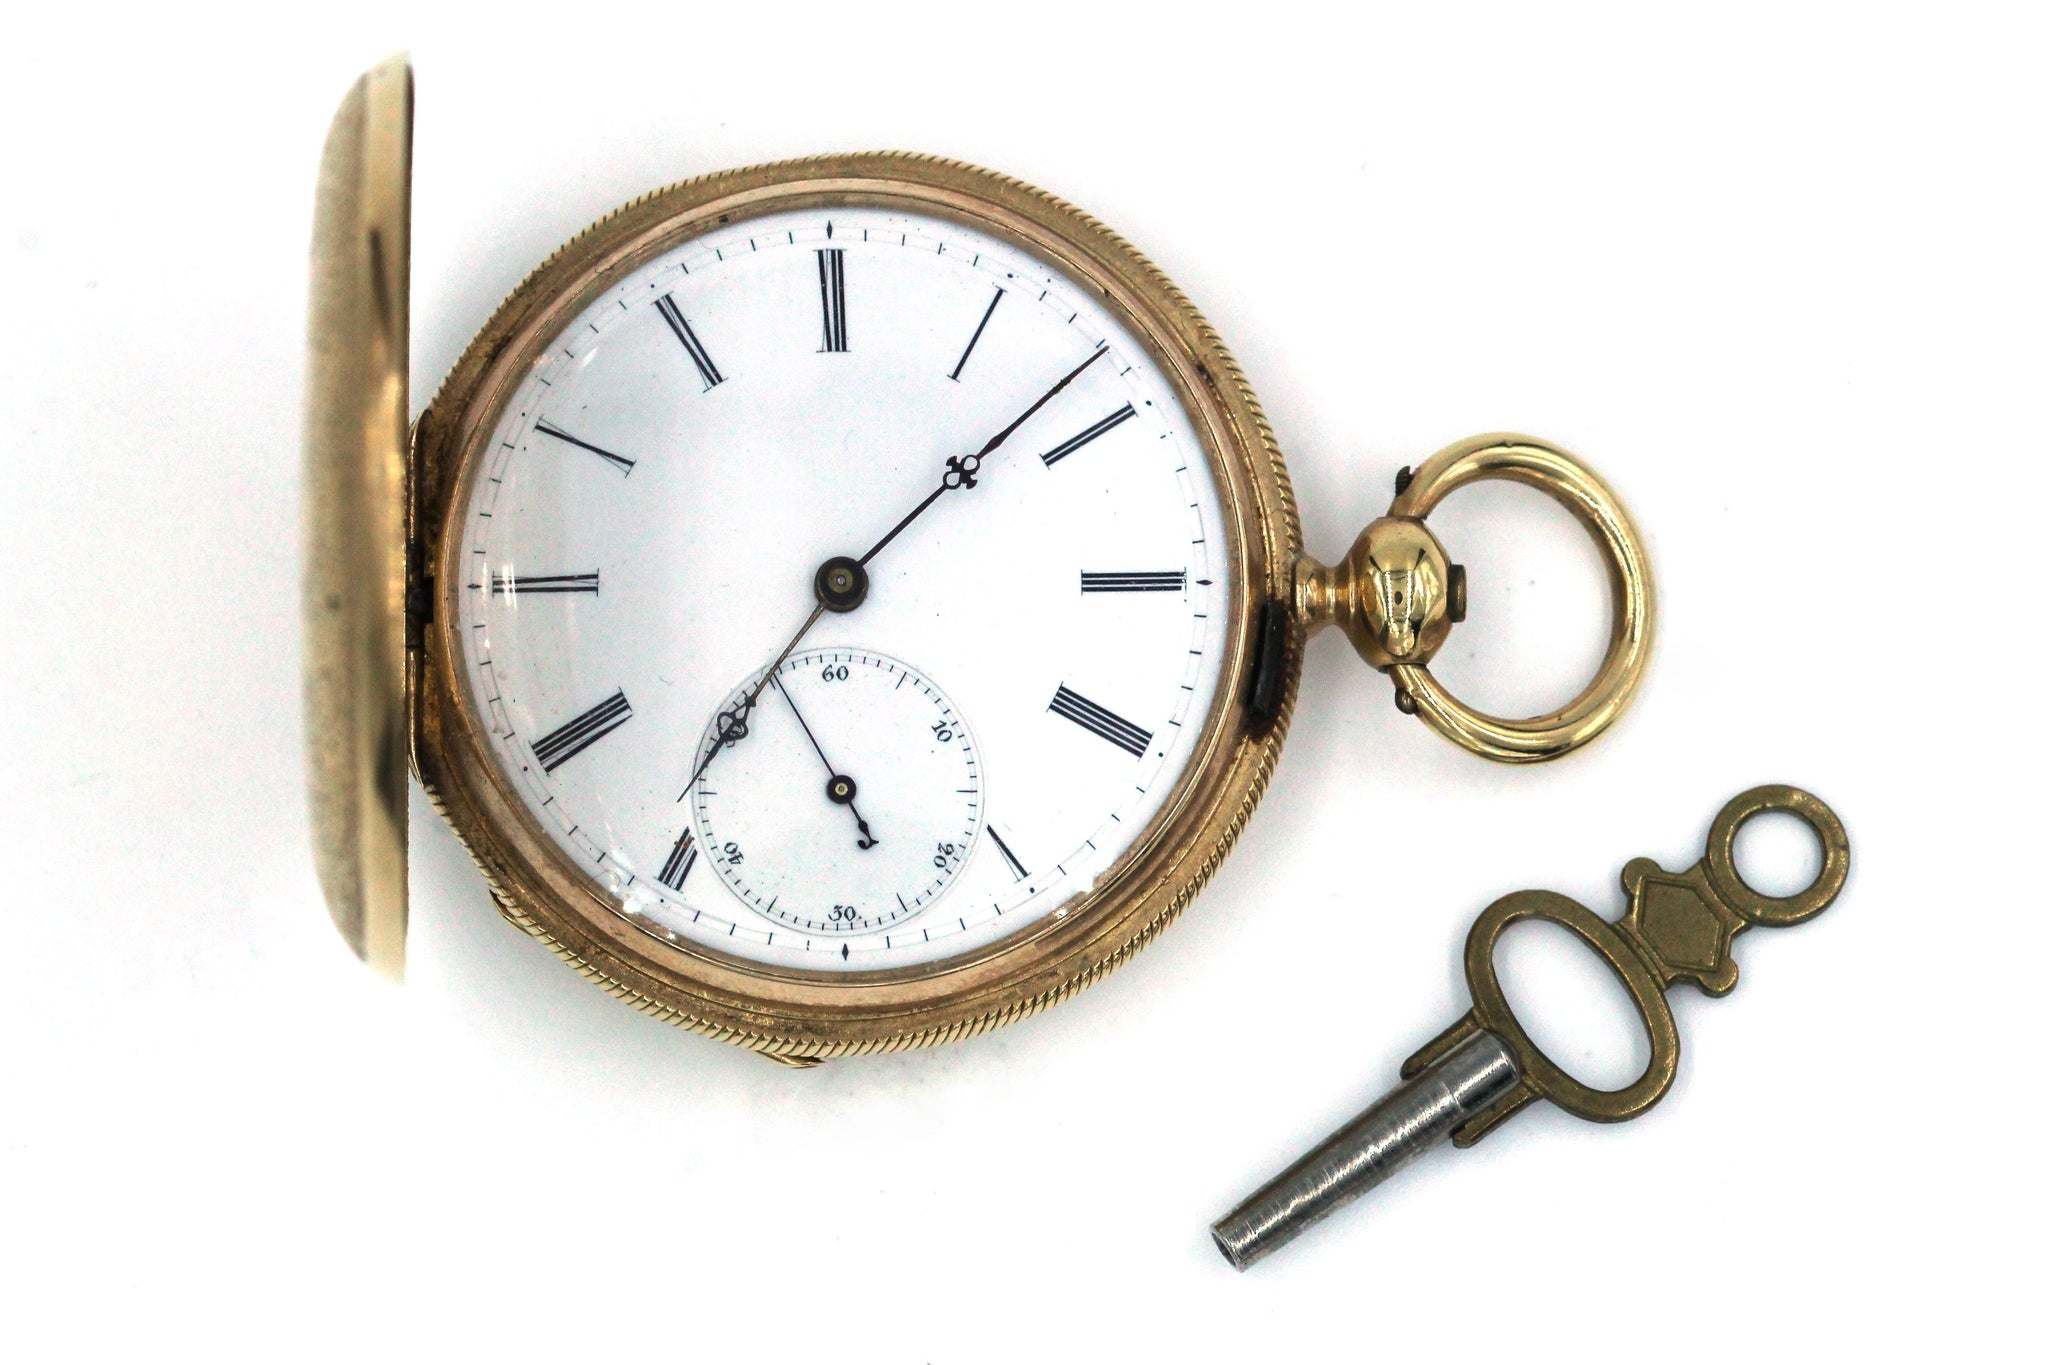 Vintage 18K Pocket Watch, SALE, SOLD